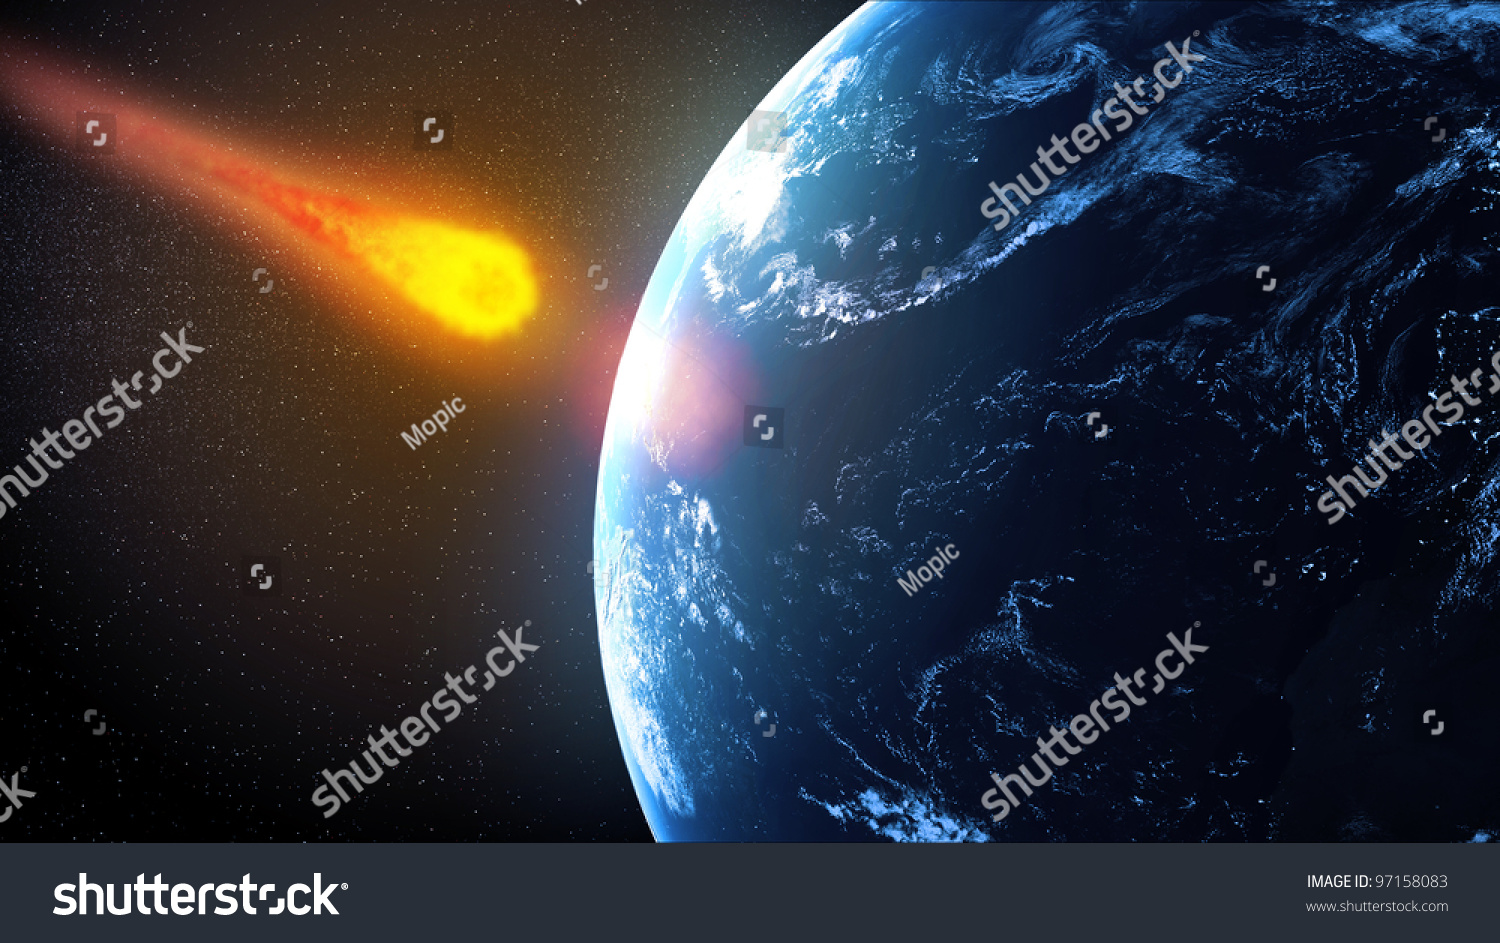 Asteroid Falling On Earth Illustration Stock Illustration ...